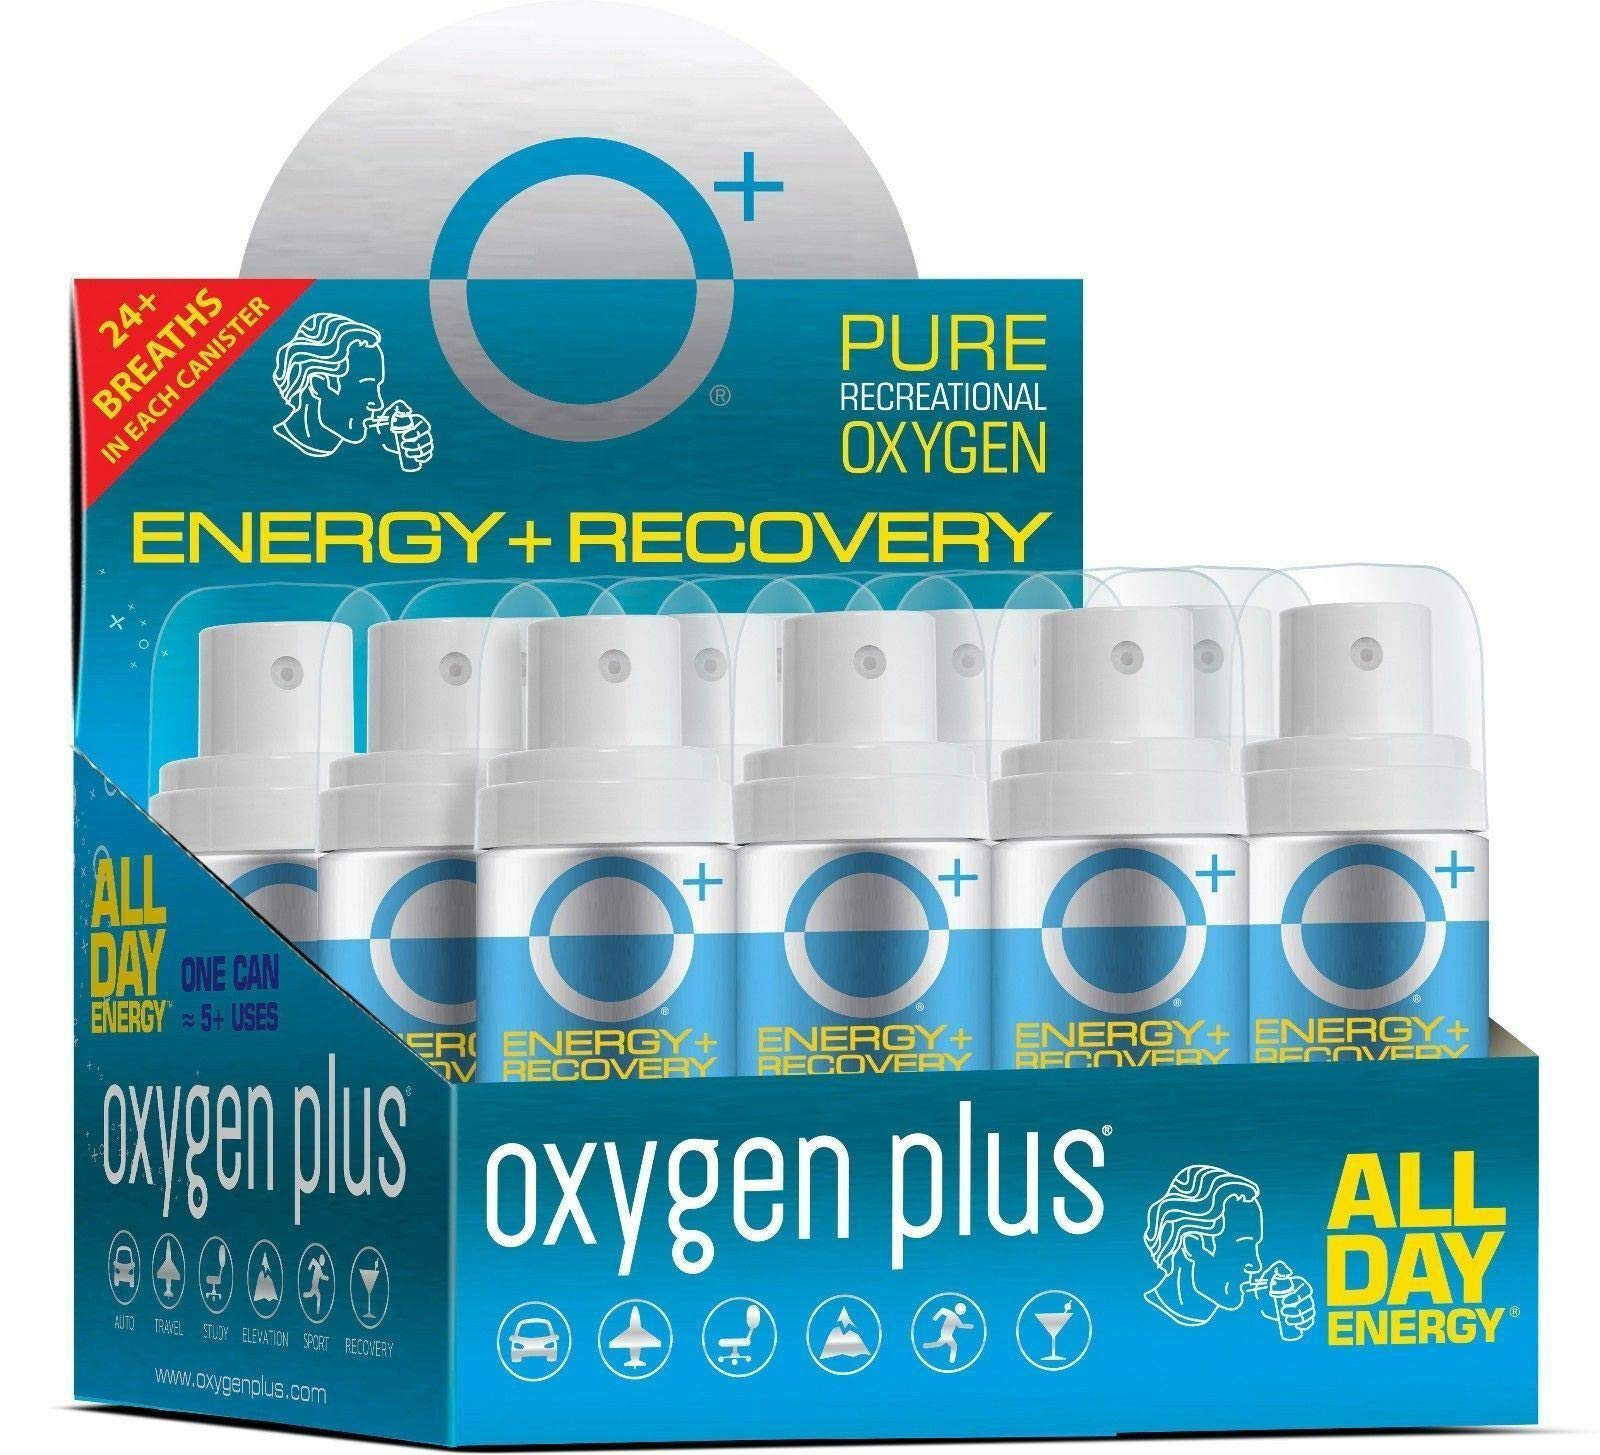 Oxygen Plus Oxygen Cans - O+ Mini Pack, Boost Oxygen Levels with Portable & Concentrated Recreational Oxygen for Altitude Performance & Energy, 1.55 Litre Canisters (12-Pack)